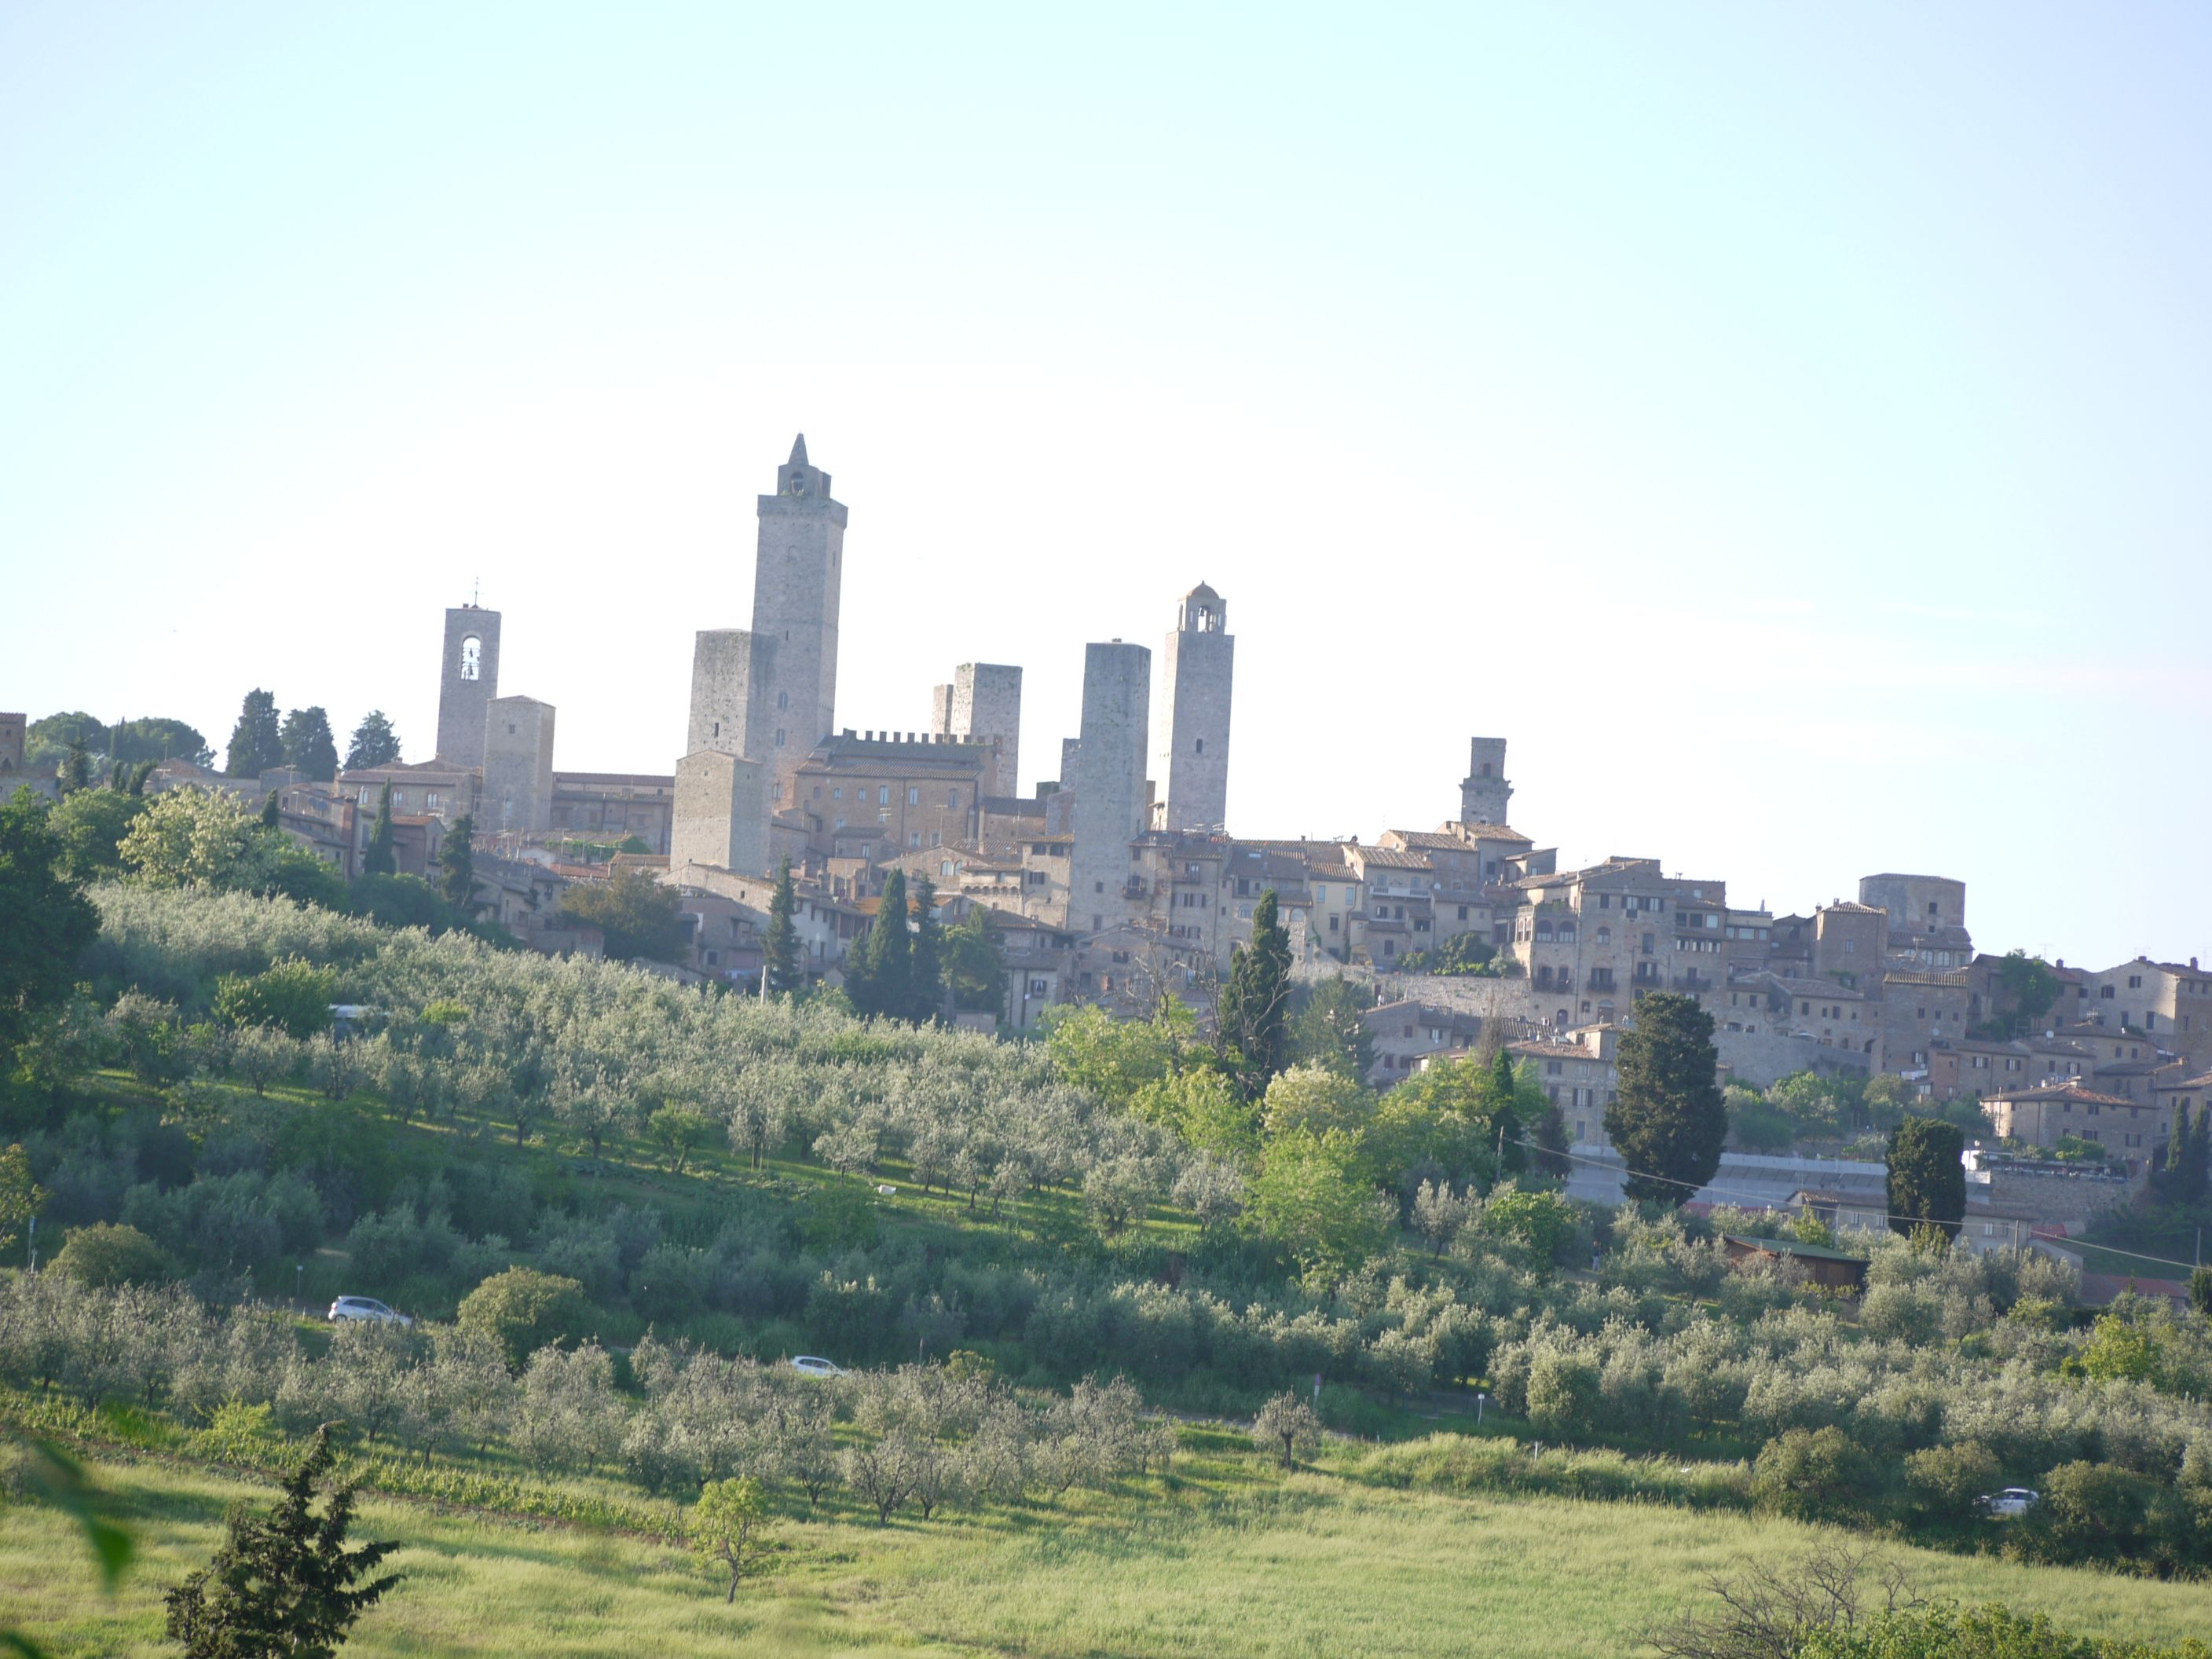 Veduta di San Gimgnano dal nostro uliveto View of San Gimignano from our olive grove